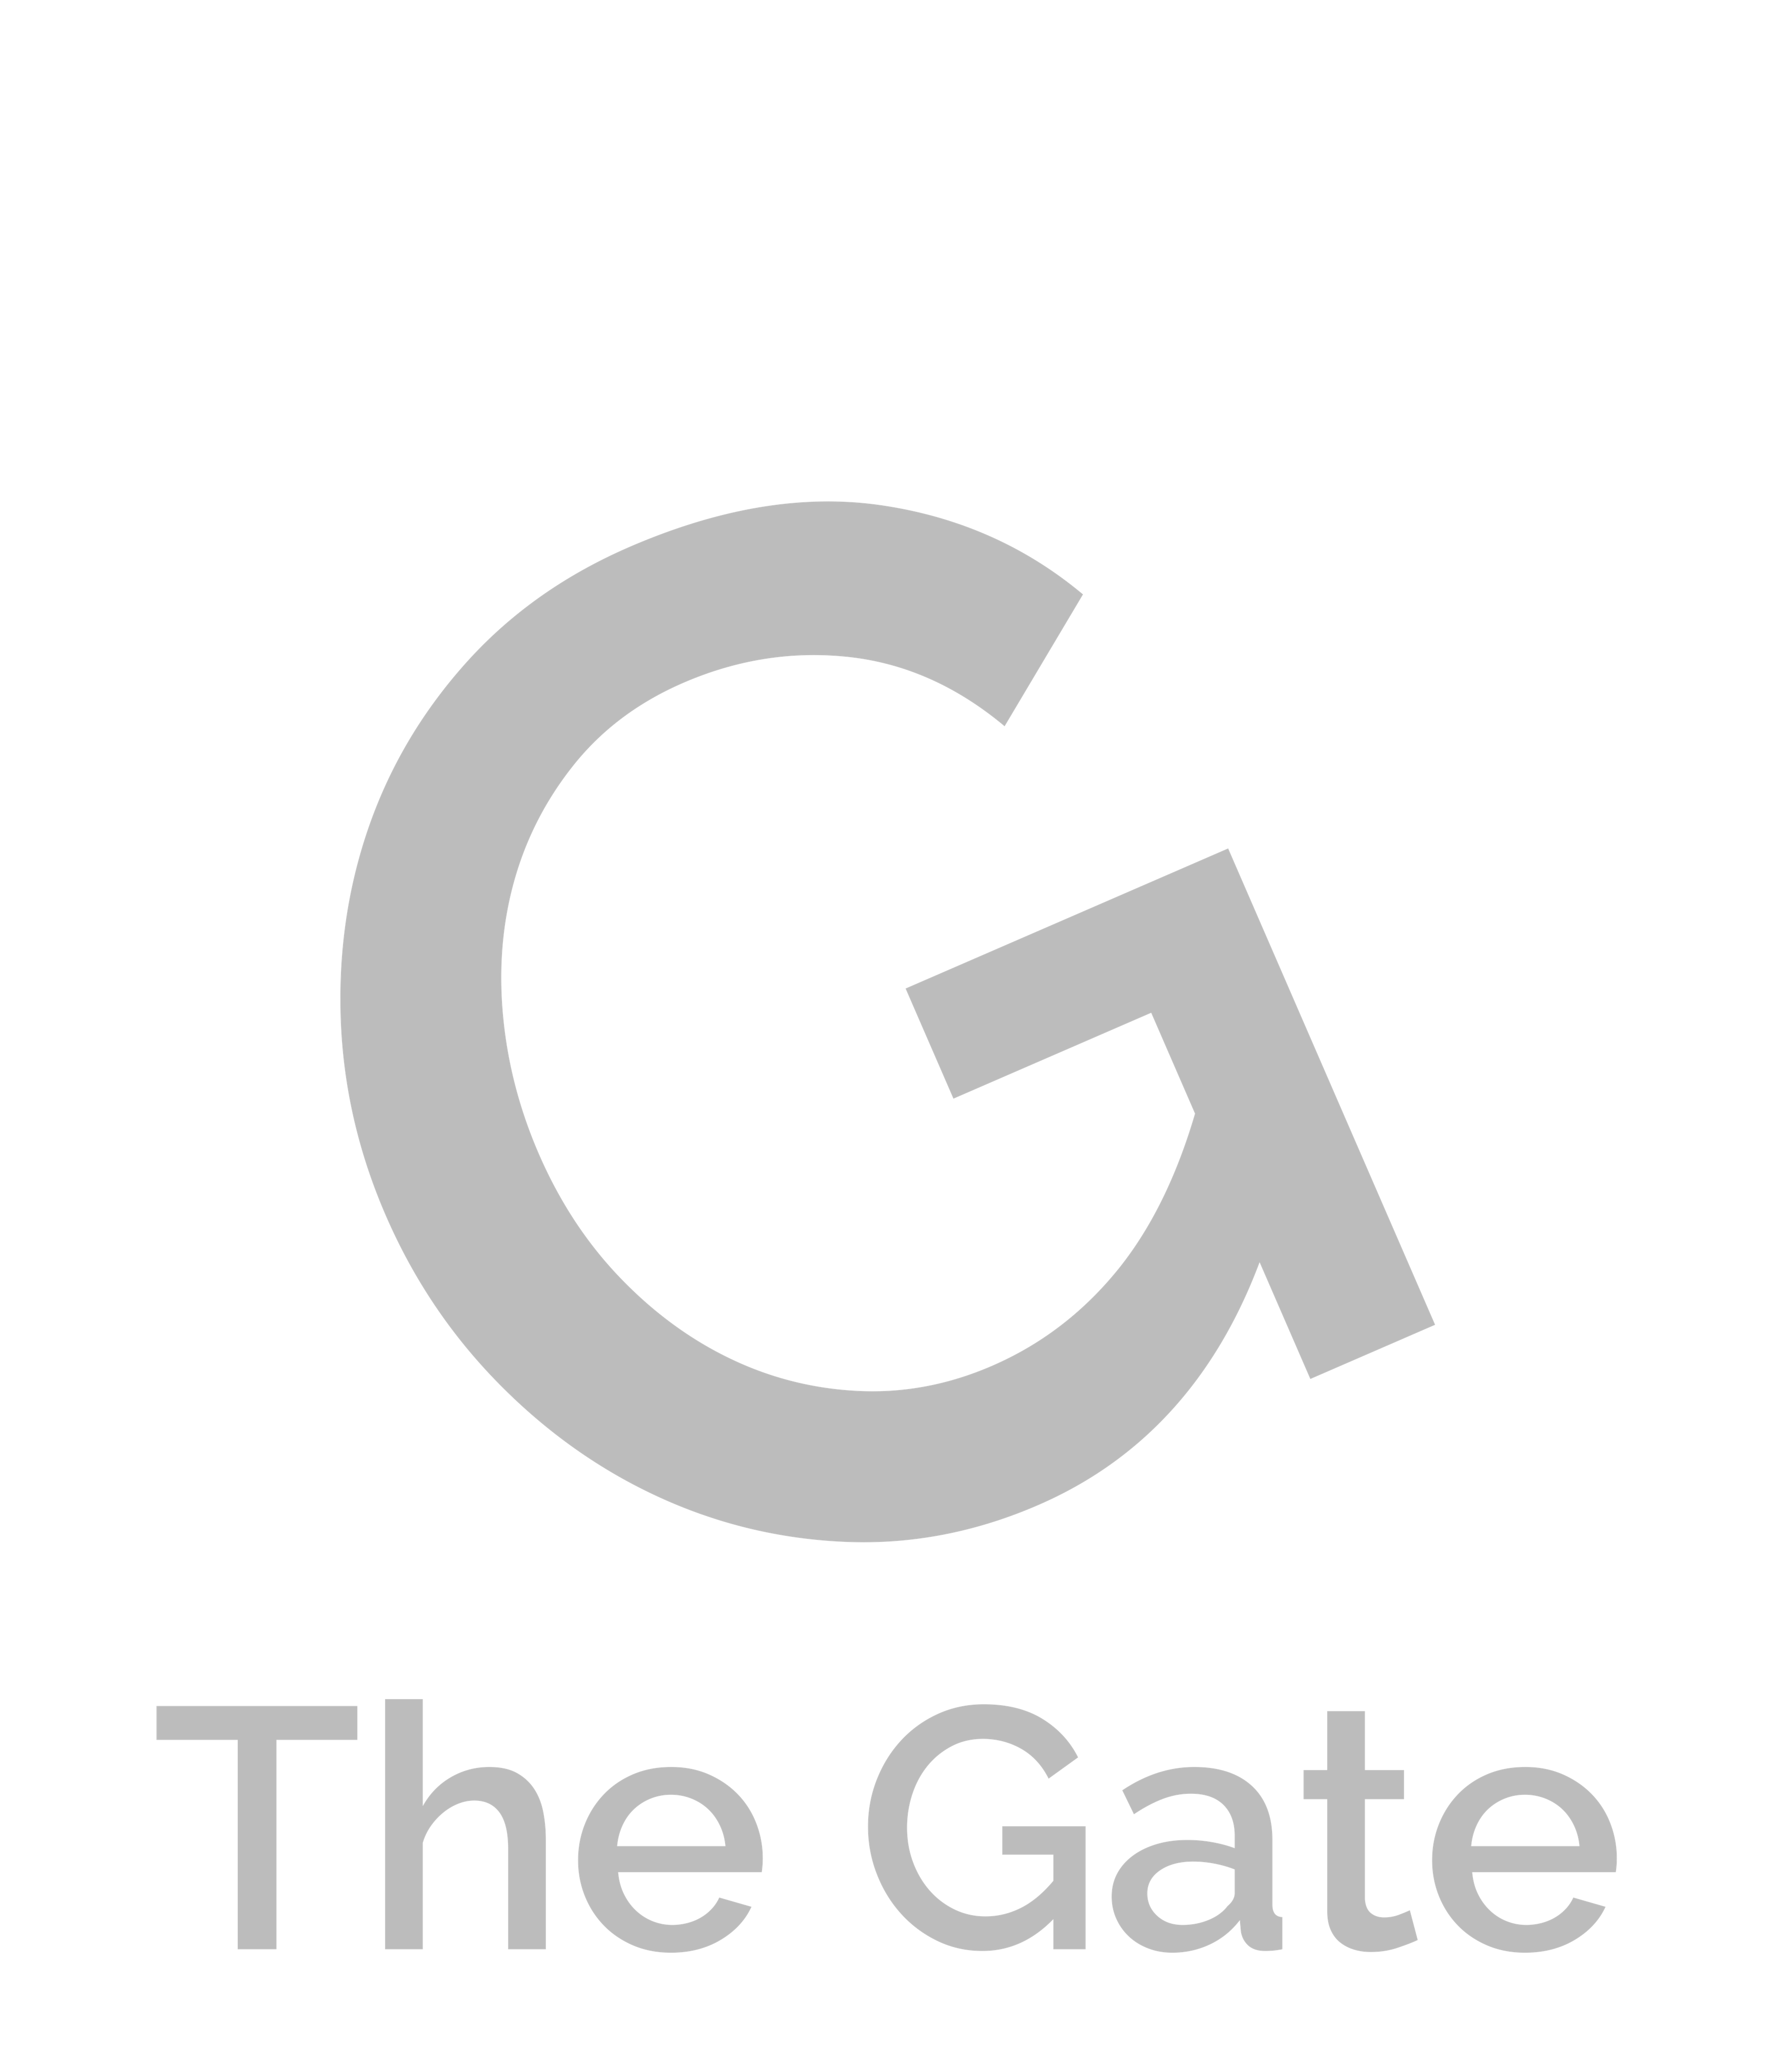 Welcome to The Gate